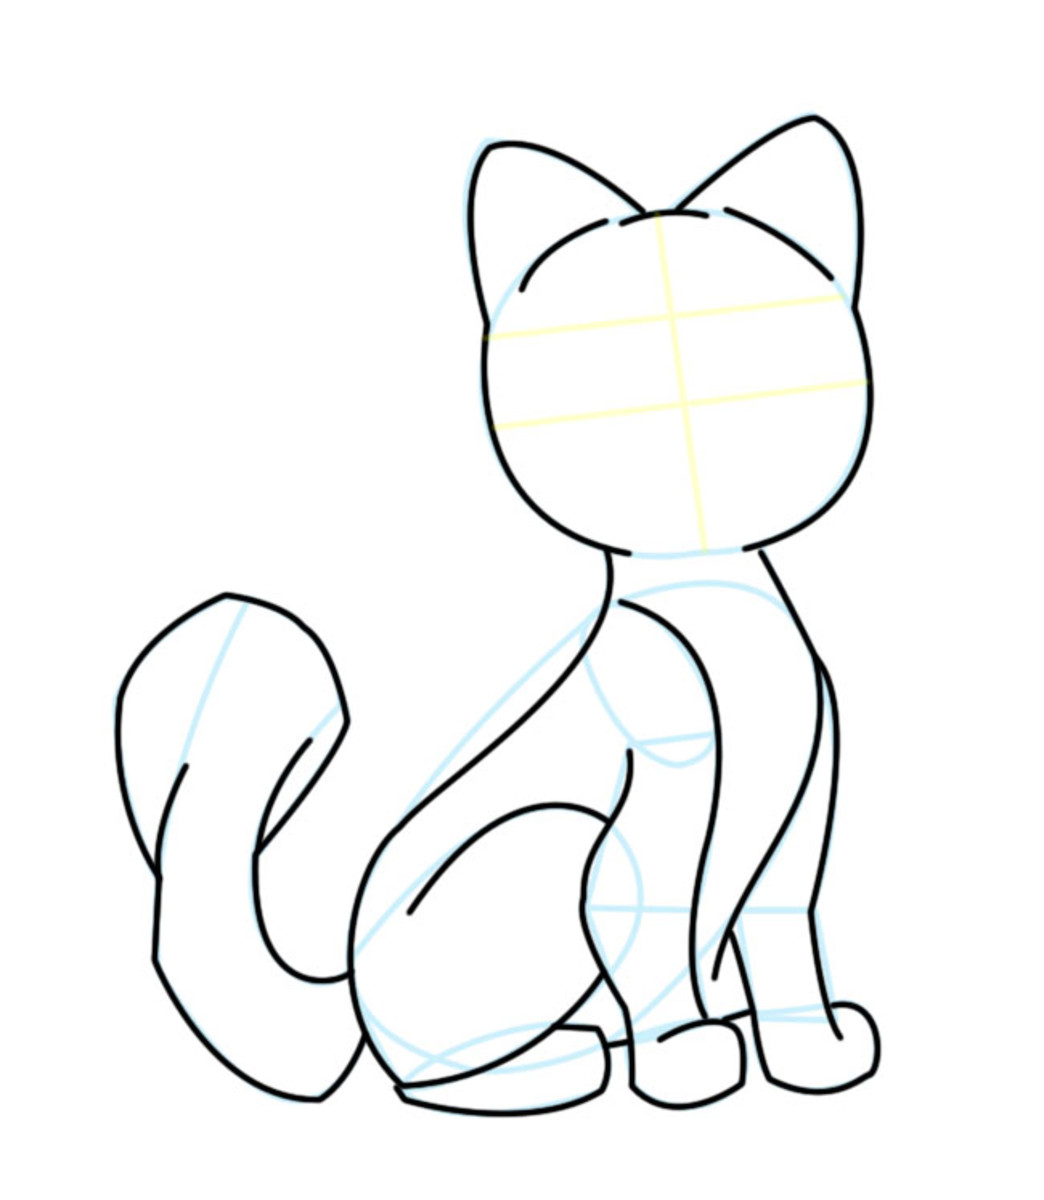 Darken your sketch lines, and bring out the cat's form. Erase all other unnecessary lines and shapes.